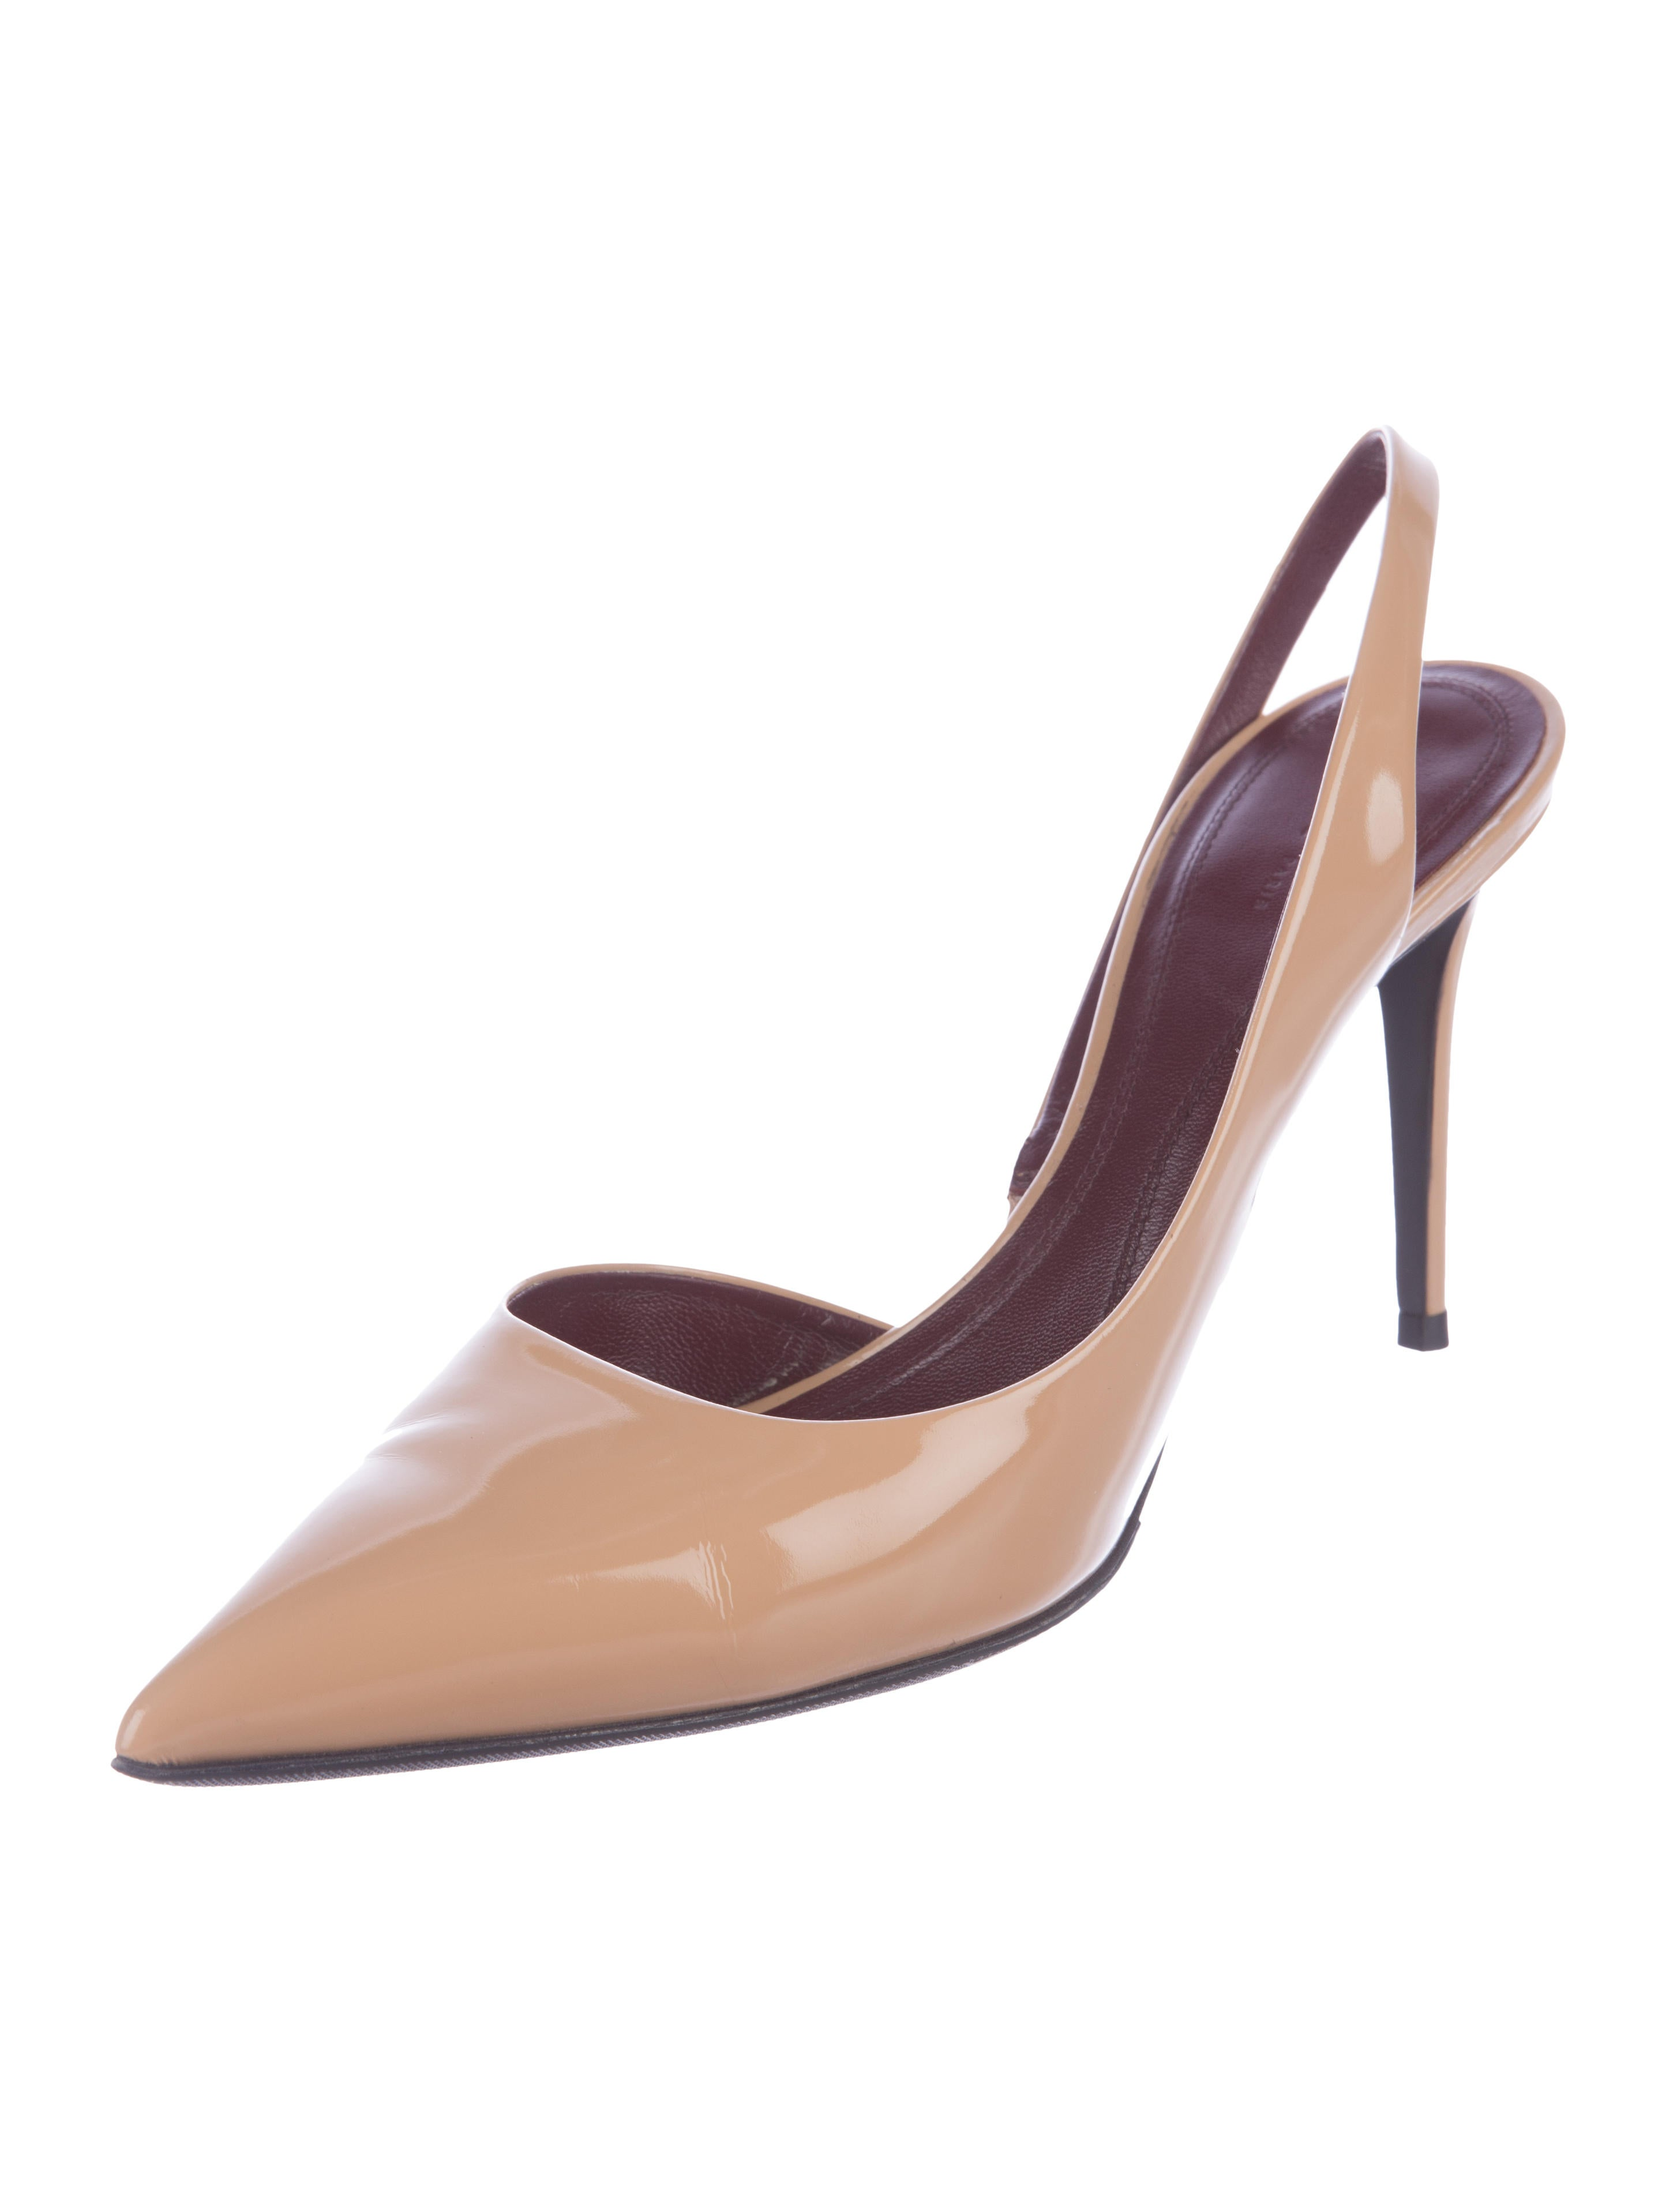 Céline Patent Leather Slingback Pumps discount Inexpensive rfv9a3CuAA